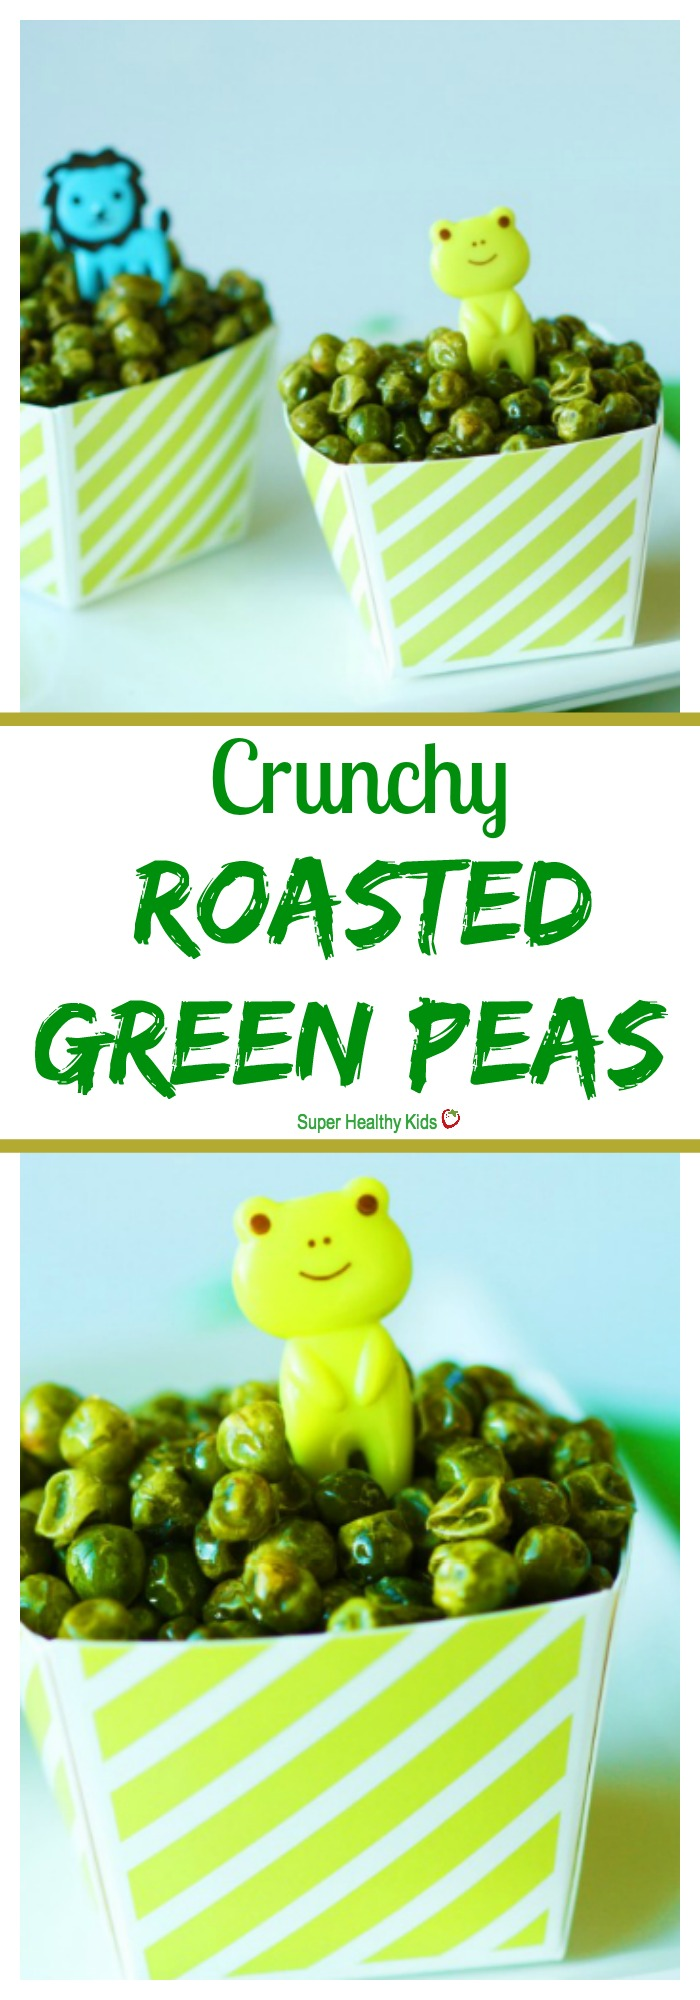 FOOD - Crunchy Roasted Green Peas. Crunchy snack for toddlers! https://www.superhealthykids.com/crunchy-roasted-green-peas/